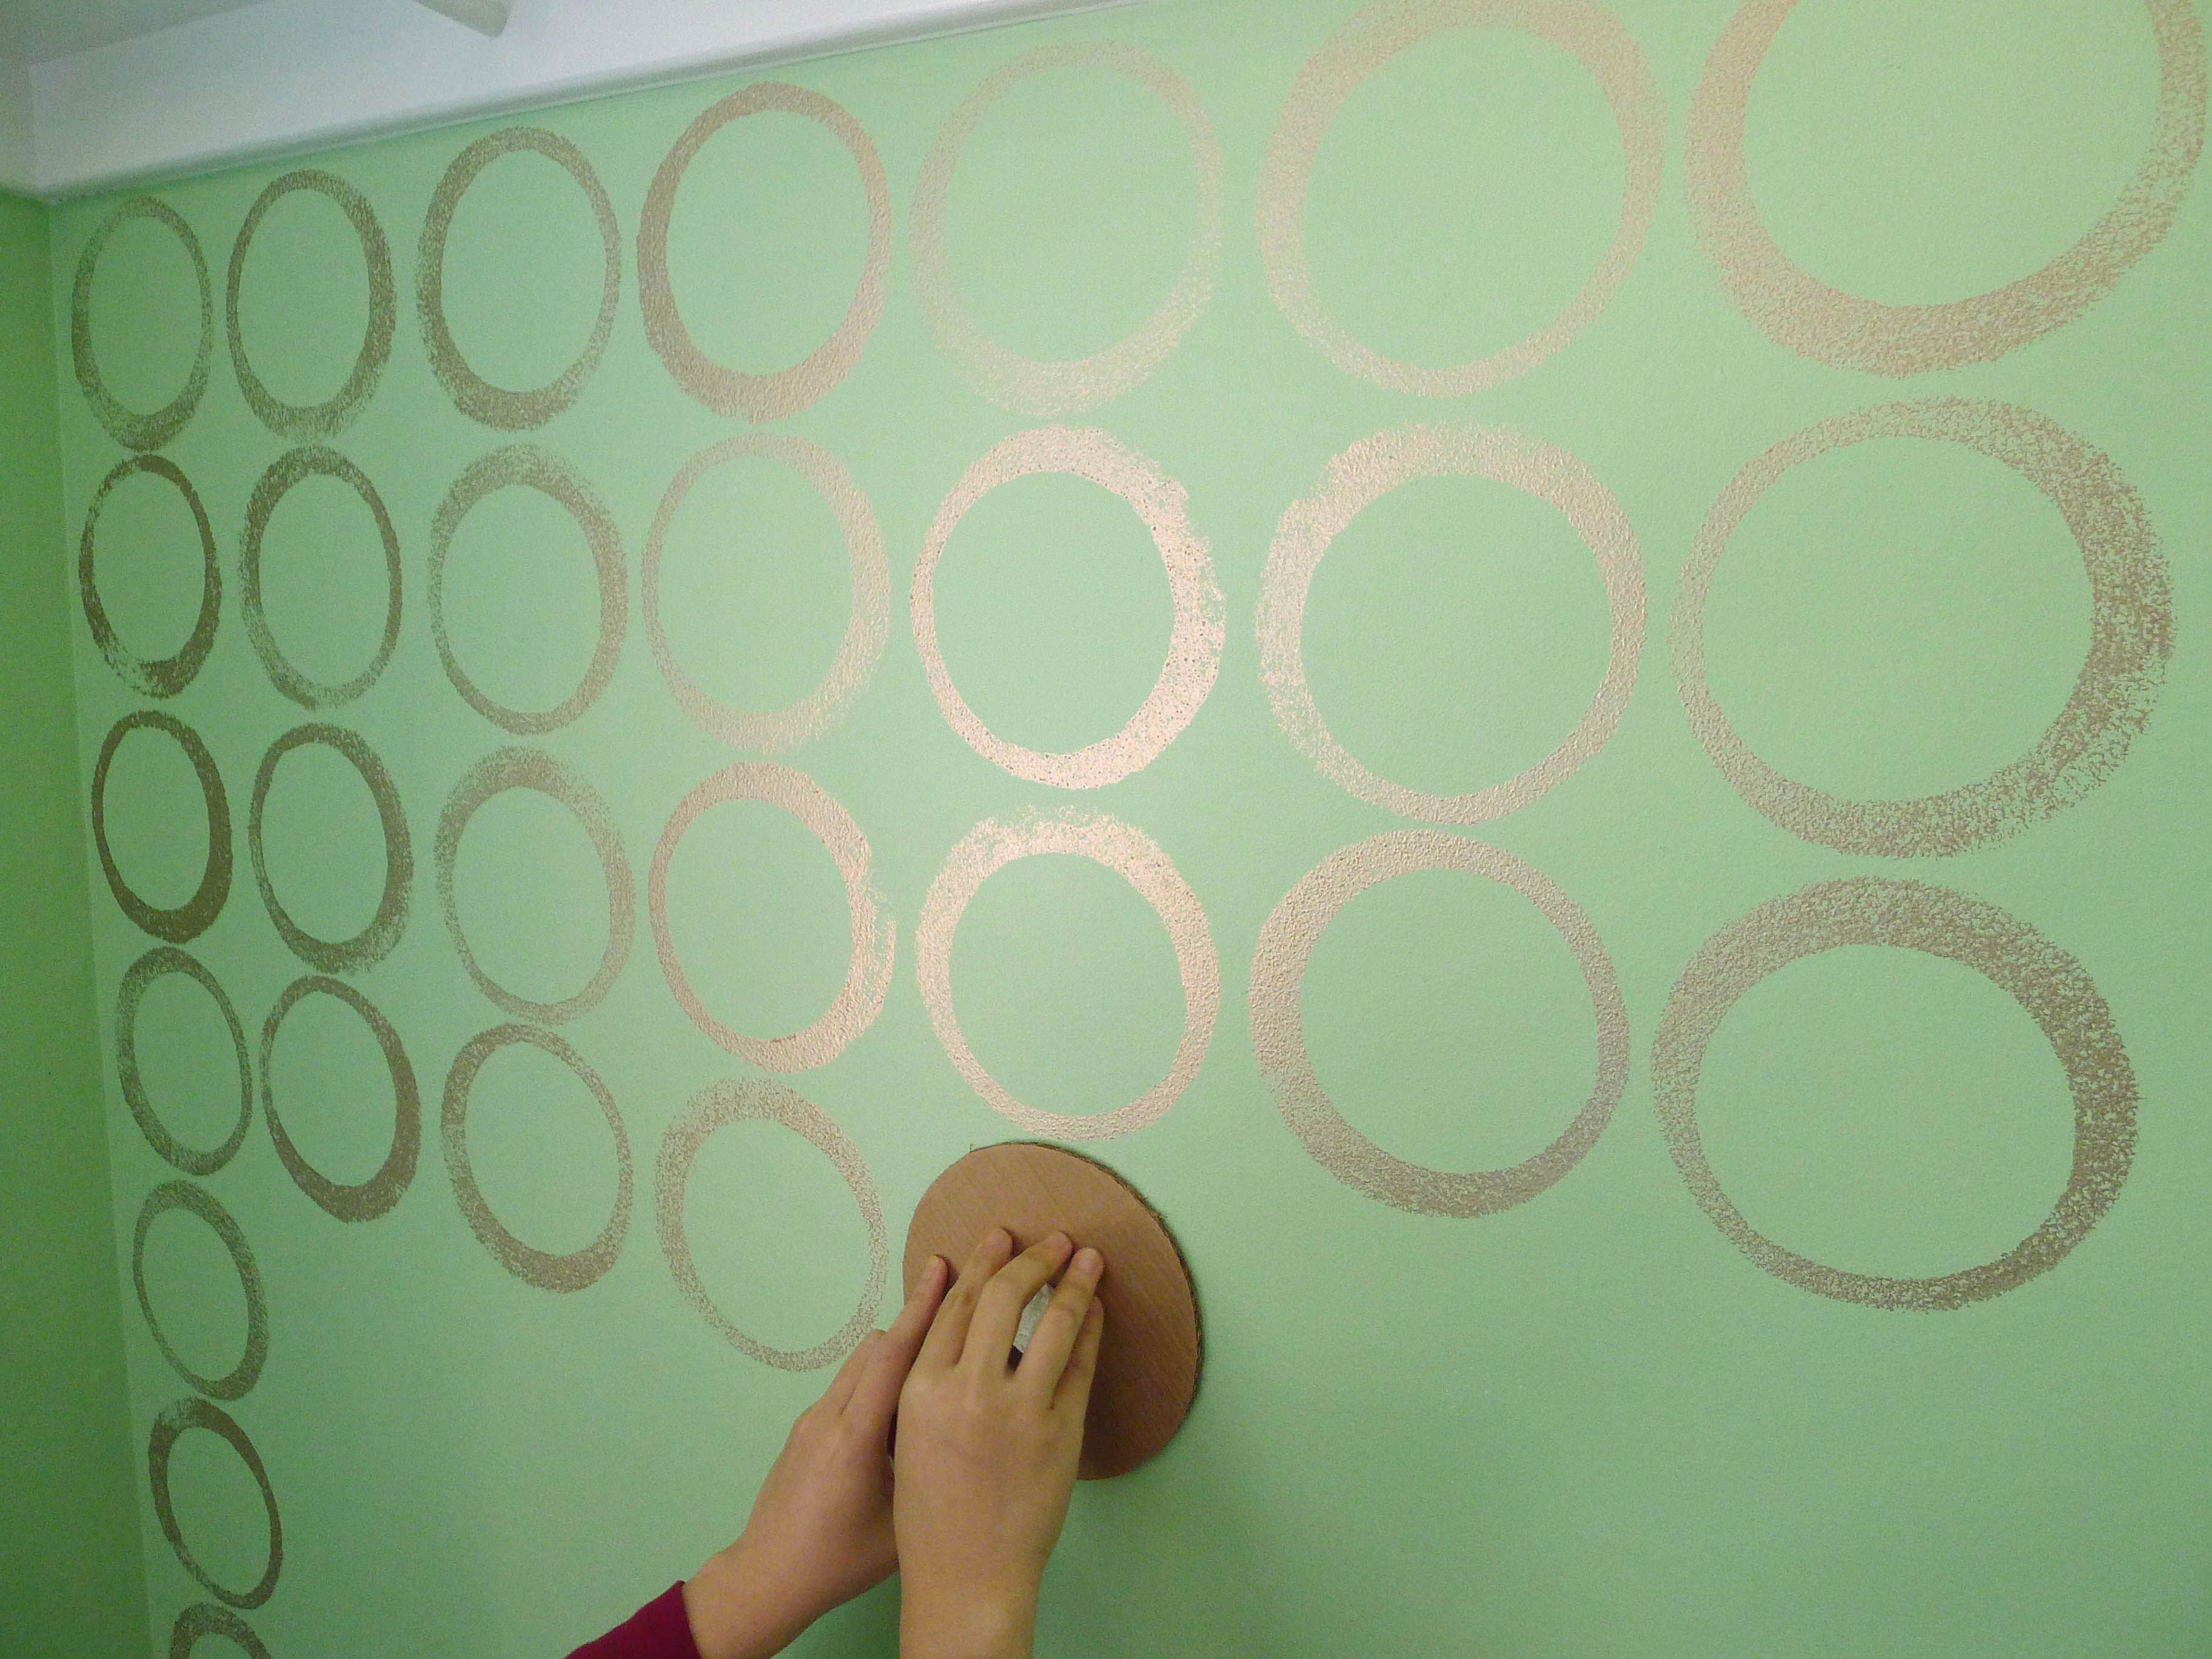 Wall stamps stencils choice image home wall decoration ideas wall paint stamps about homes decorating ideas wall stencils wall paint stamps about homes decorating ideas amipublicfo Image collections